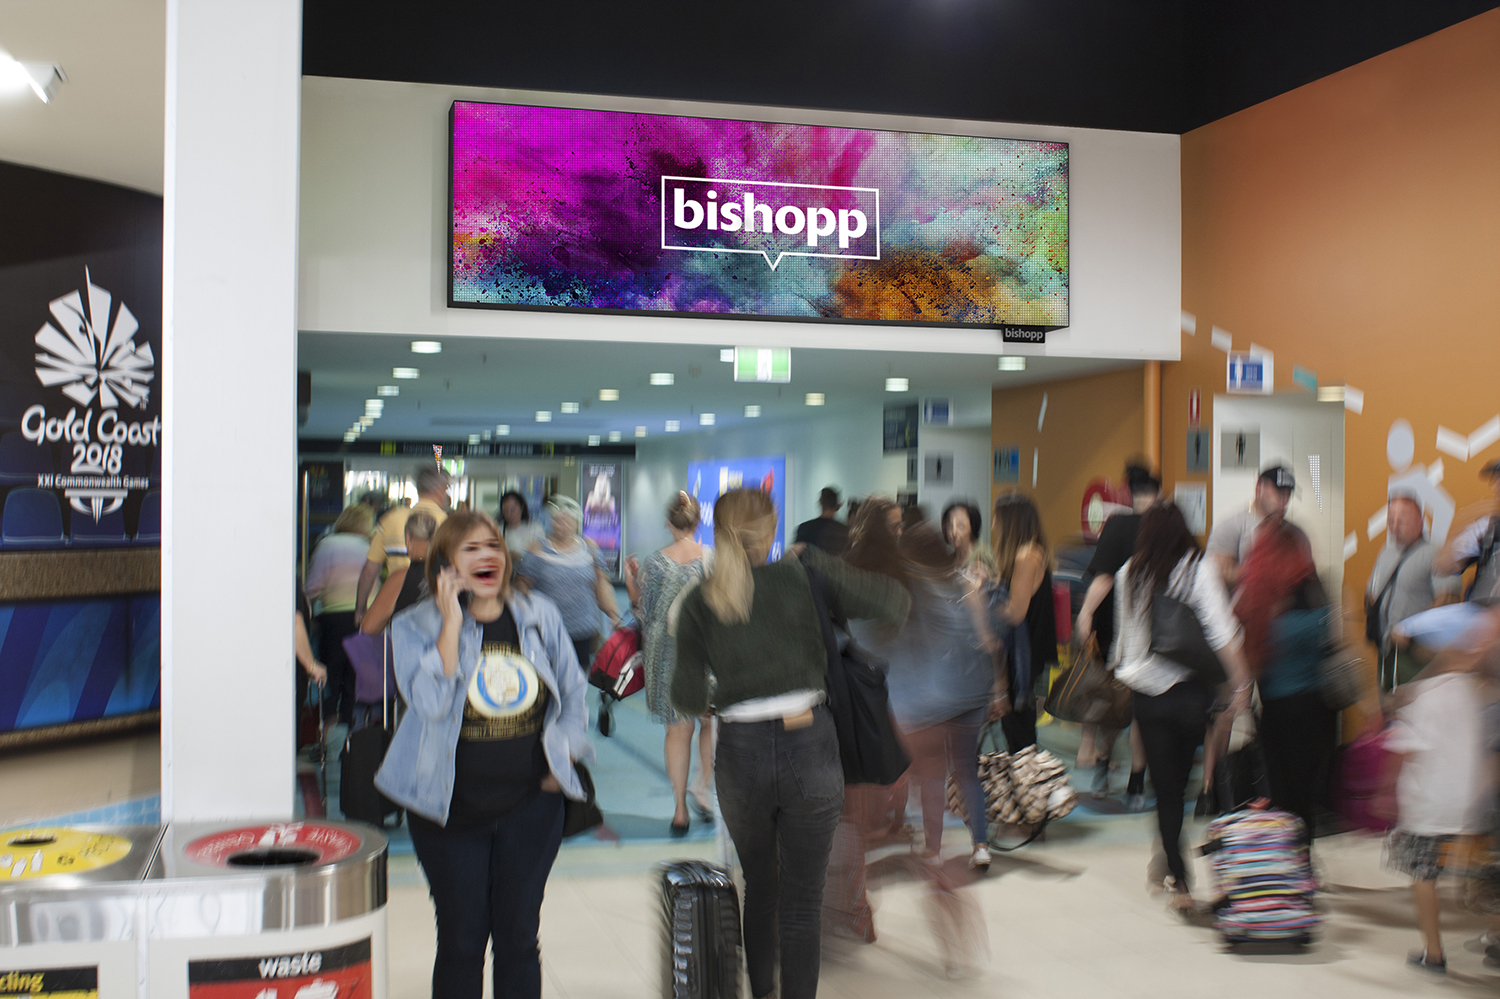 Gold Coast Airport, Gold Coast Airport Advertising, Bishopp Airport Advertising